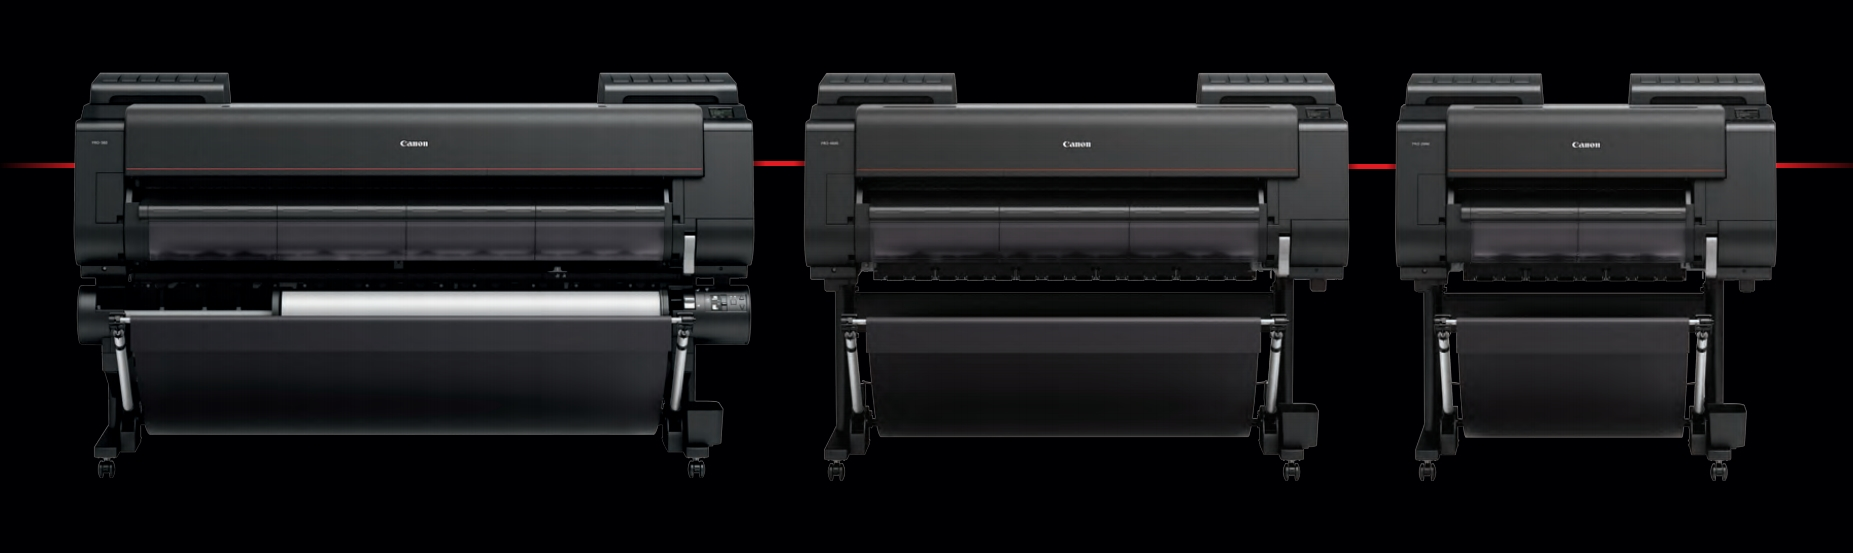 Canon imagePROGRAF PRO2000 Large Format Plotter Printer